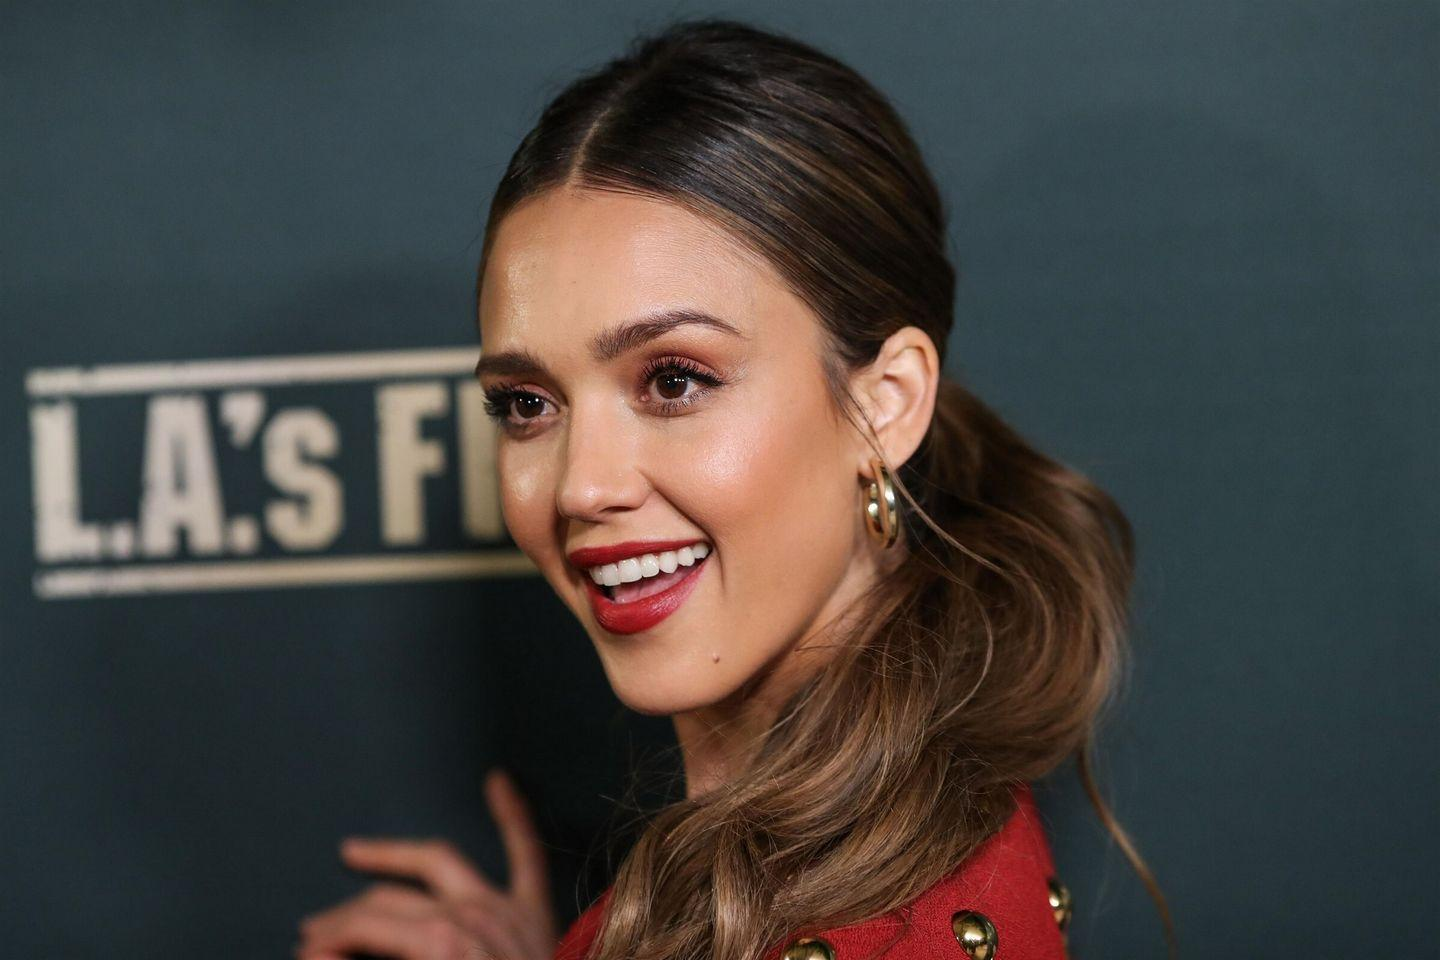 Jessica Alba - L.A.s Finest Premiere in West Hollywood - Set 2